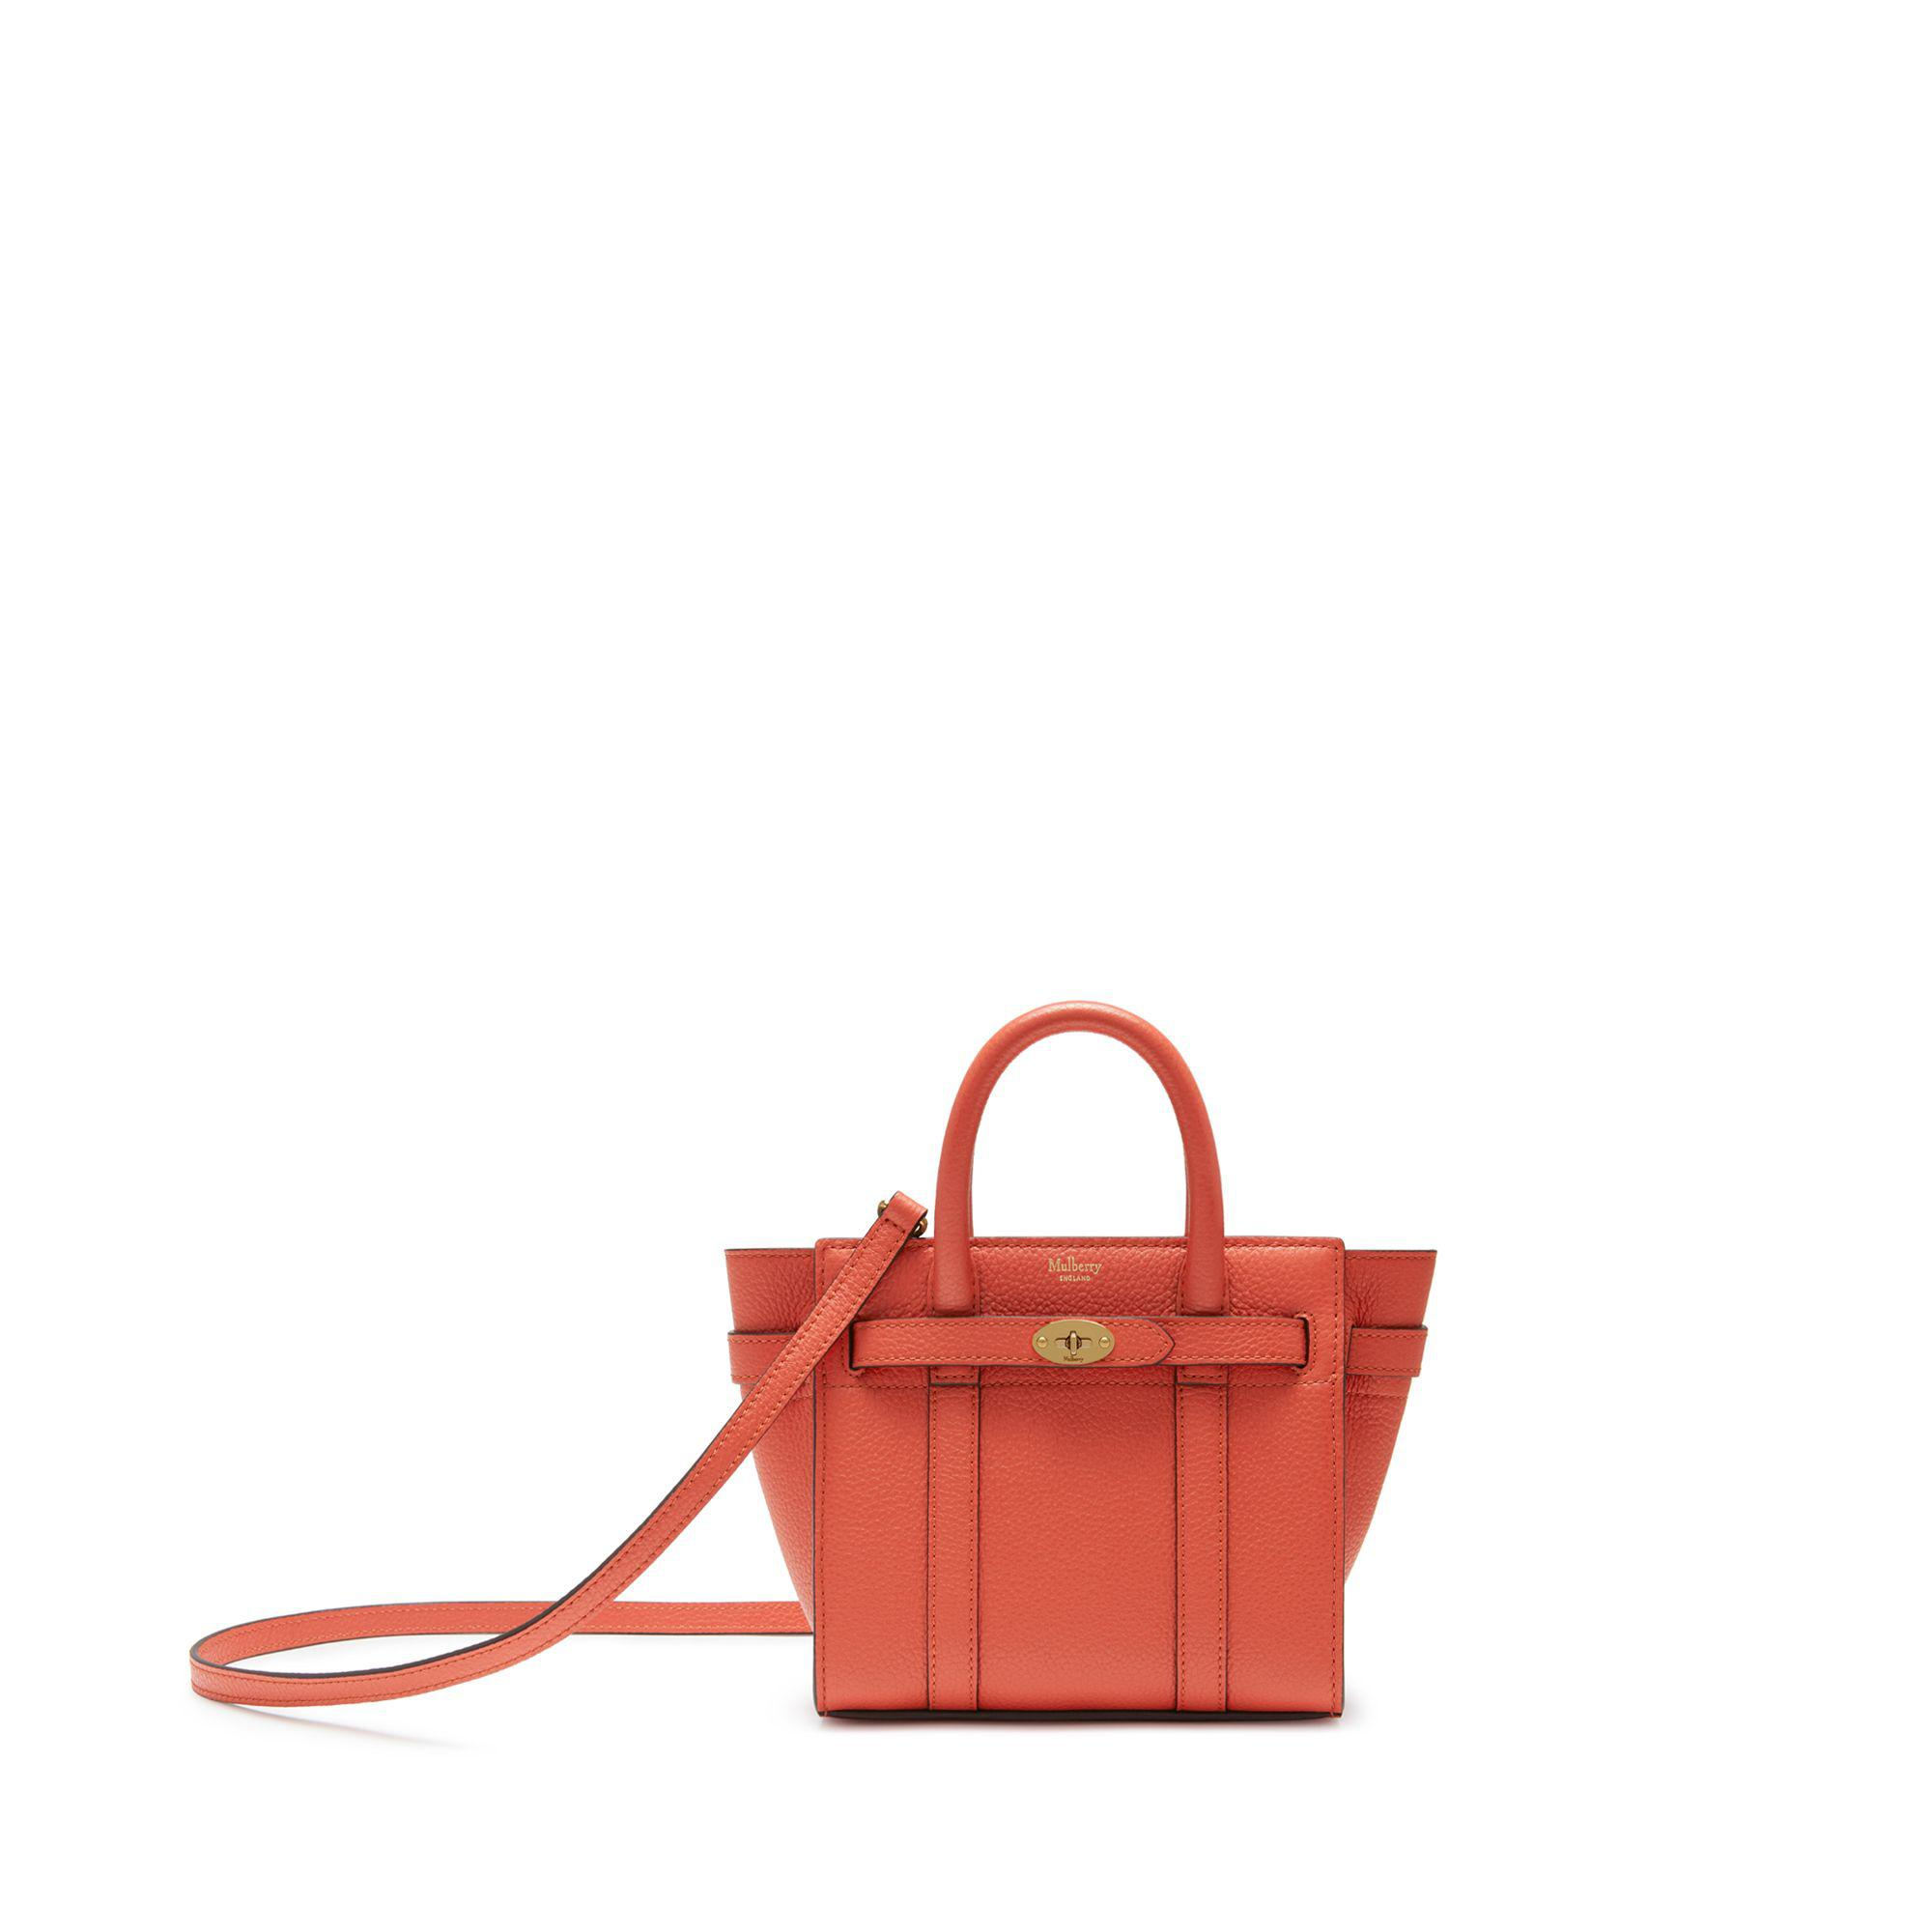 Mulberry - Pink Micro Zipped Bayswater In Coral Rose Small Classic Grain -  Lyst. View fullscreen 0e39ffd55d744